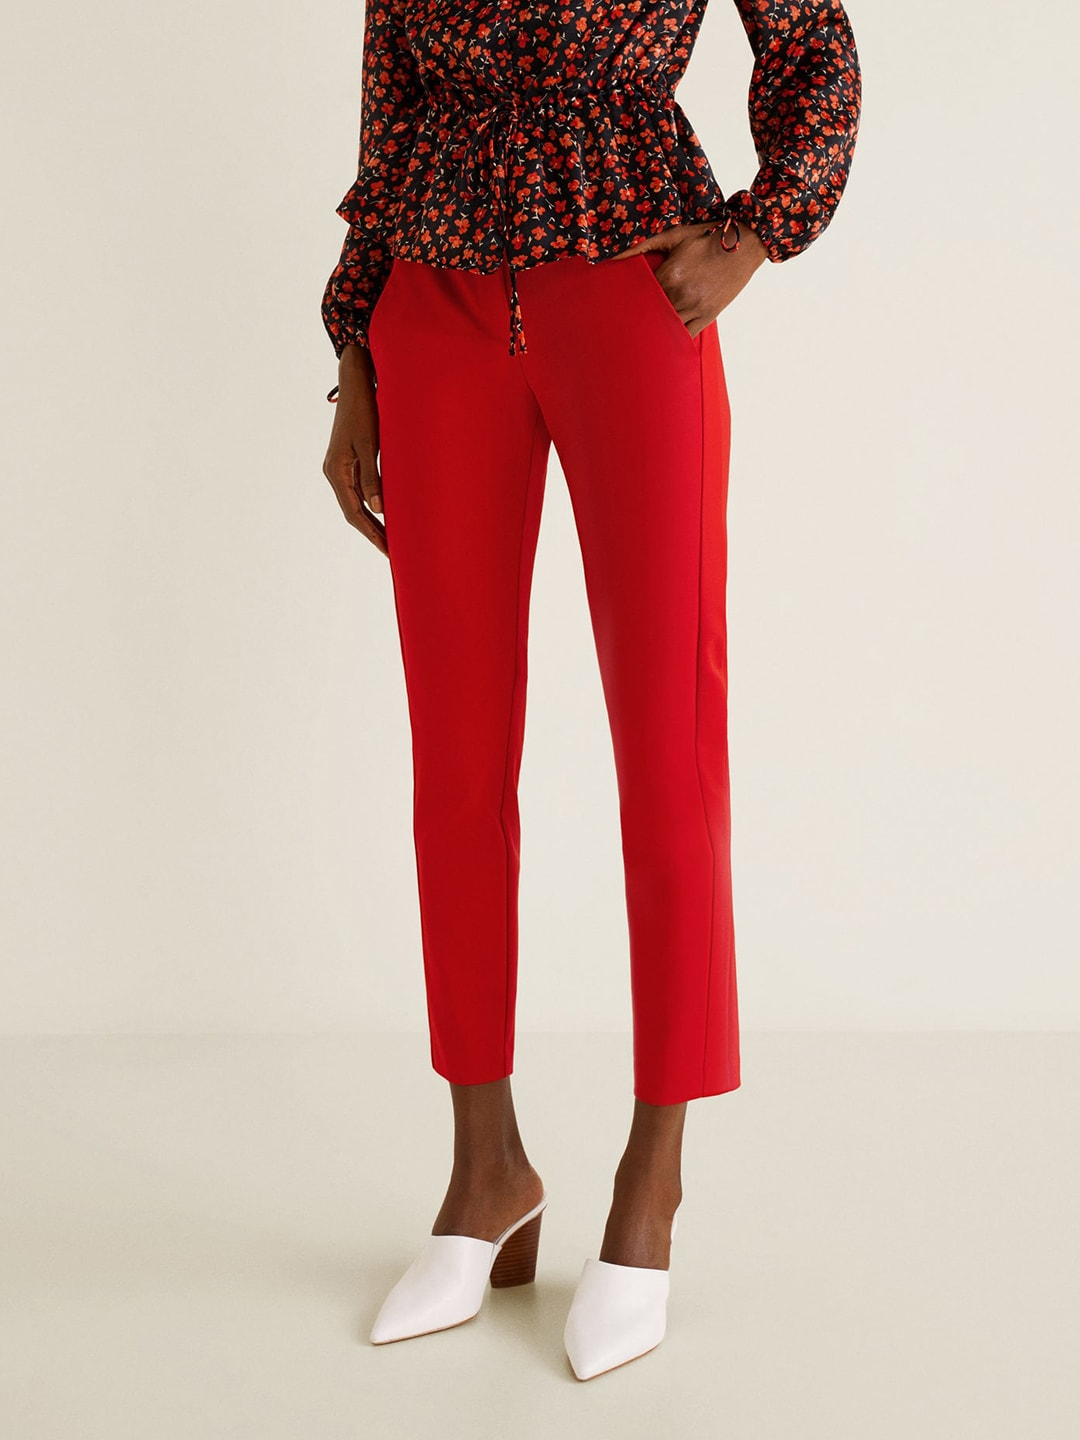 1a5647baf69 Flat Front Trousers - Buy Flat Front Trousers online in India